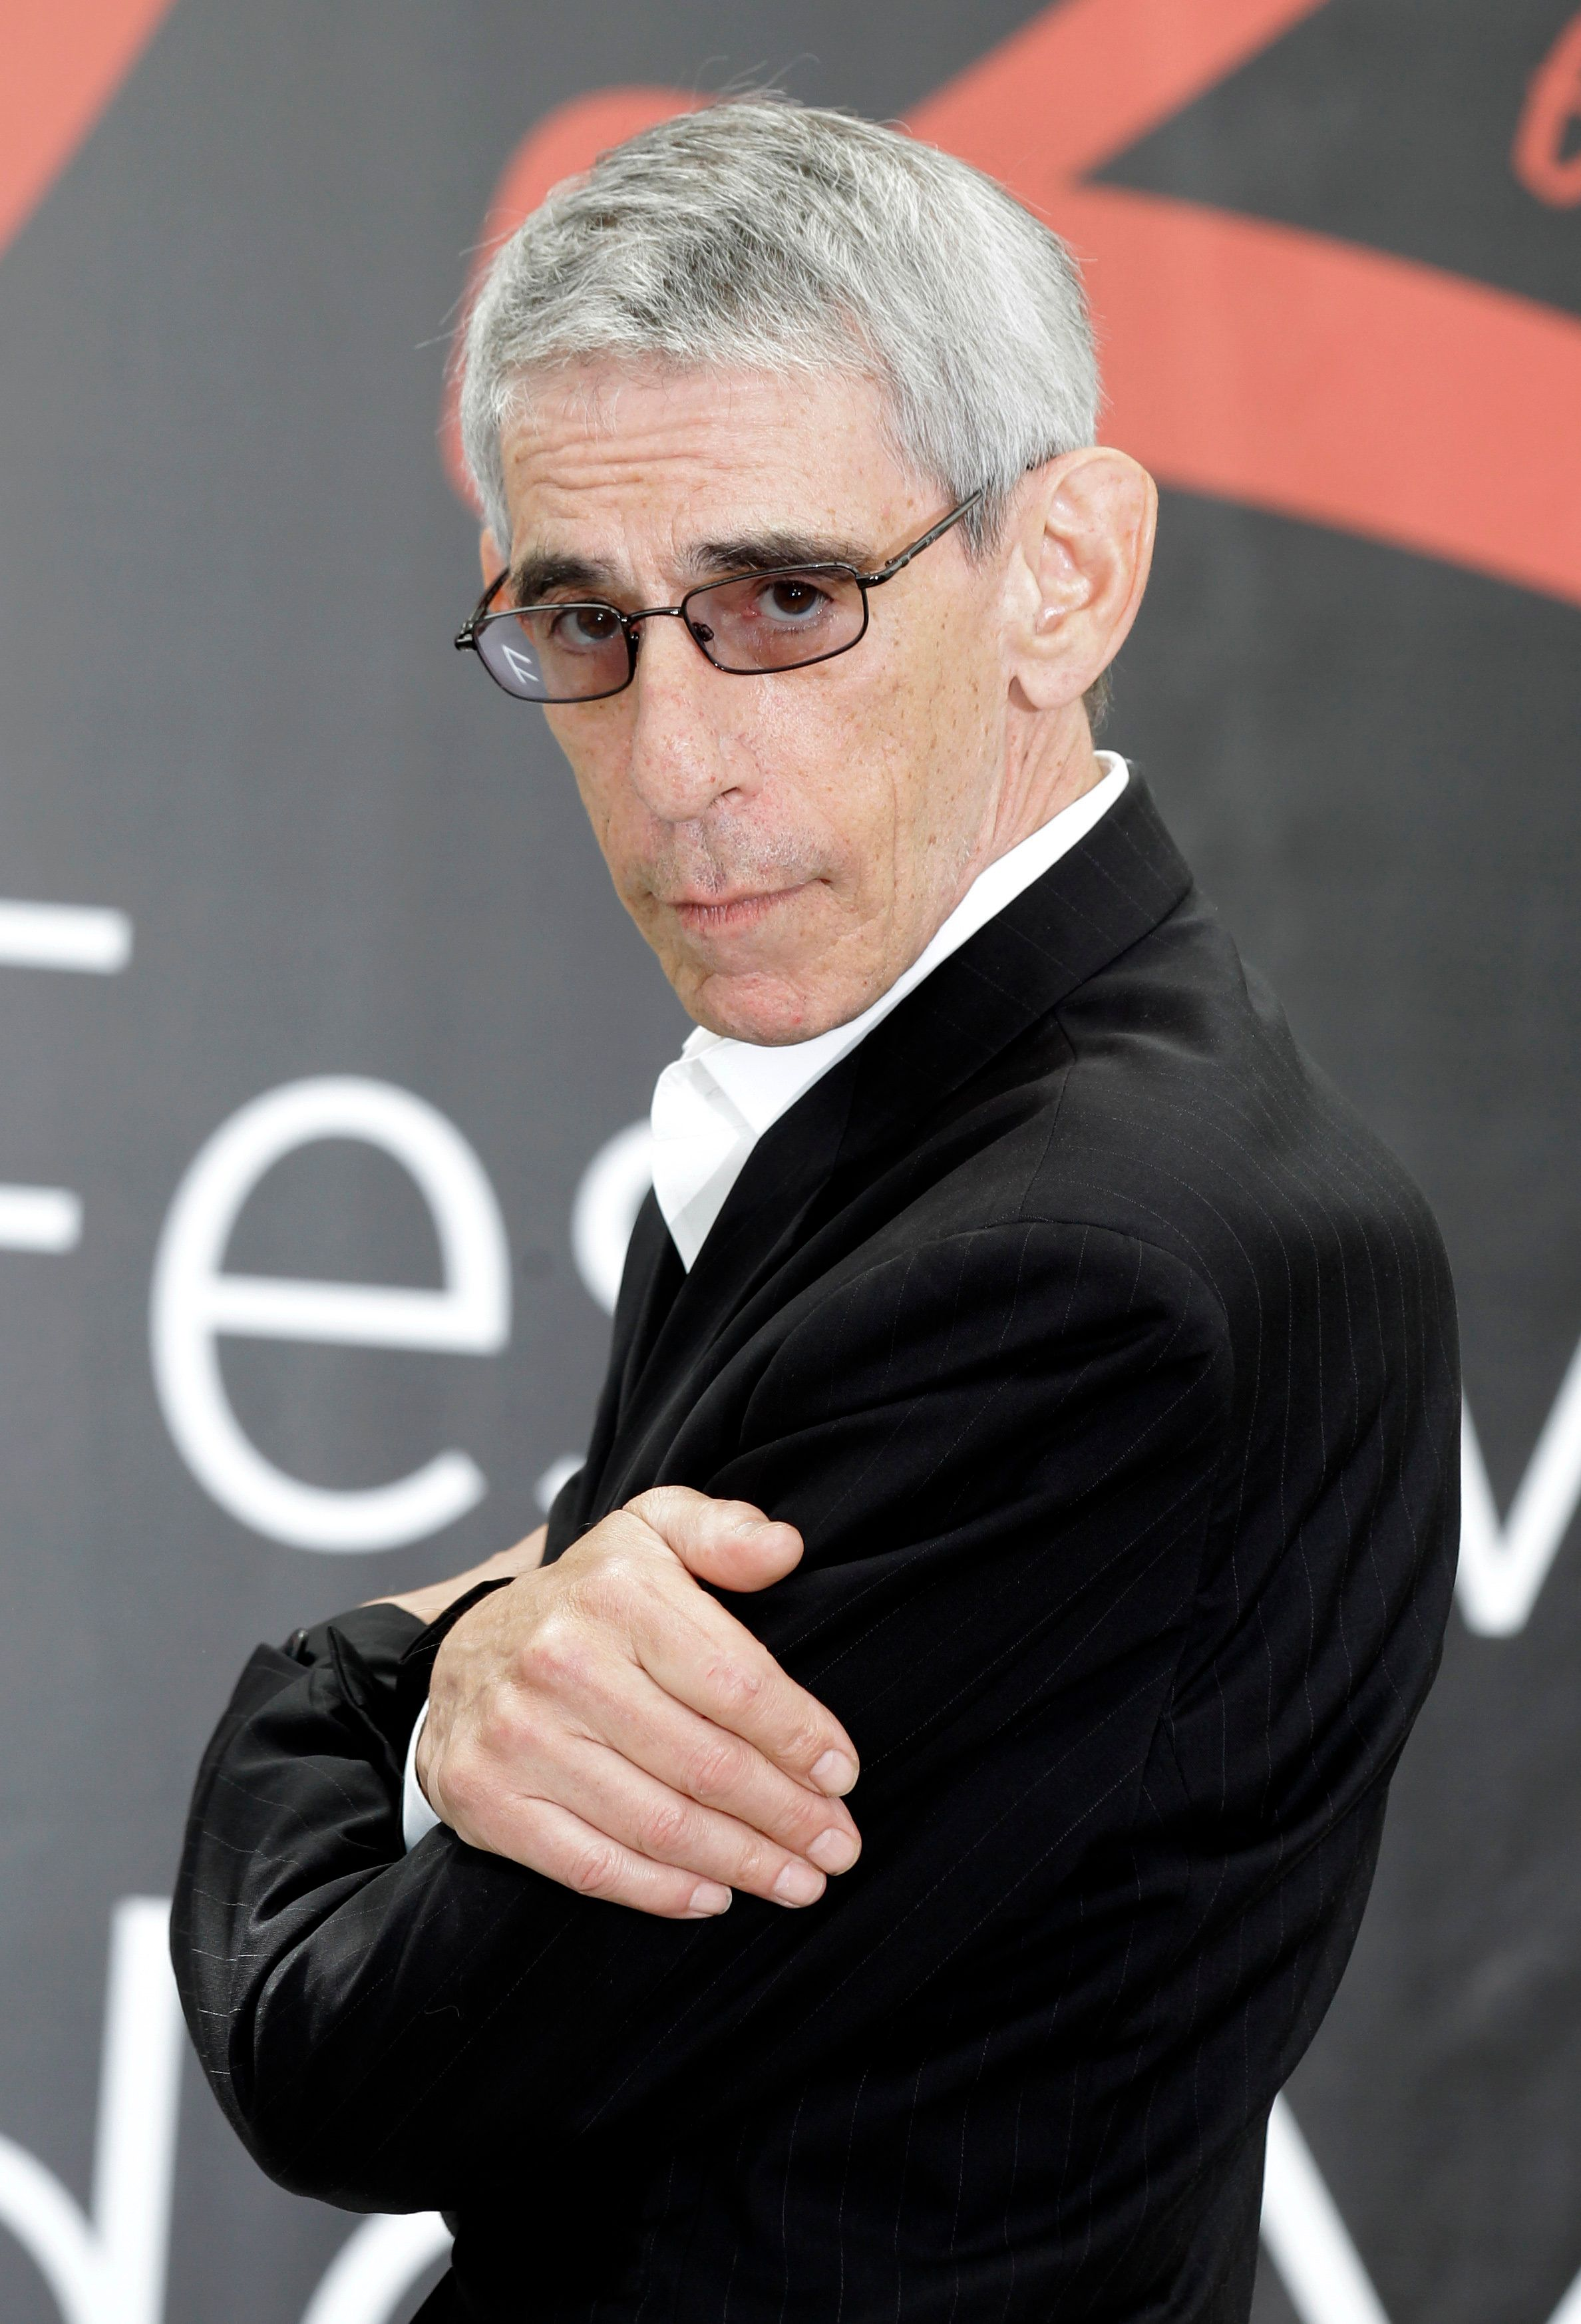 US actor Richard Belzer poses during a photocall at the 2012 Monte Carlo Television Festival, Tuesday, June 12th, 2012, in Monaco. (AP Photo/Lionel Cironneau)